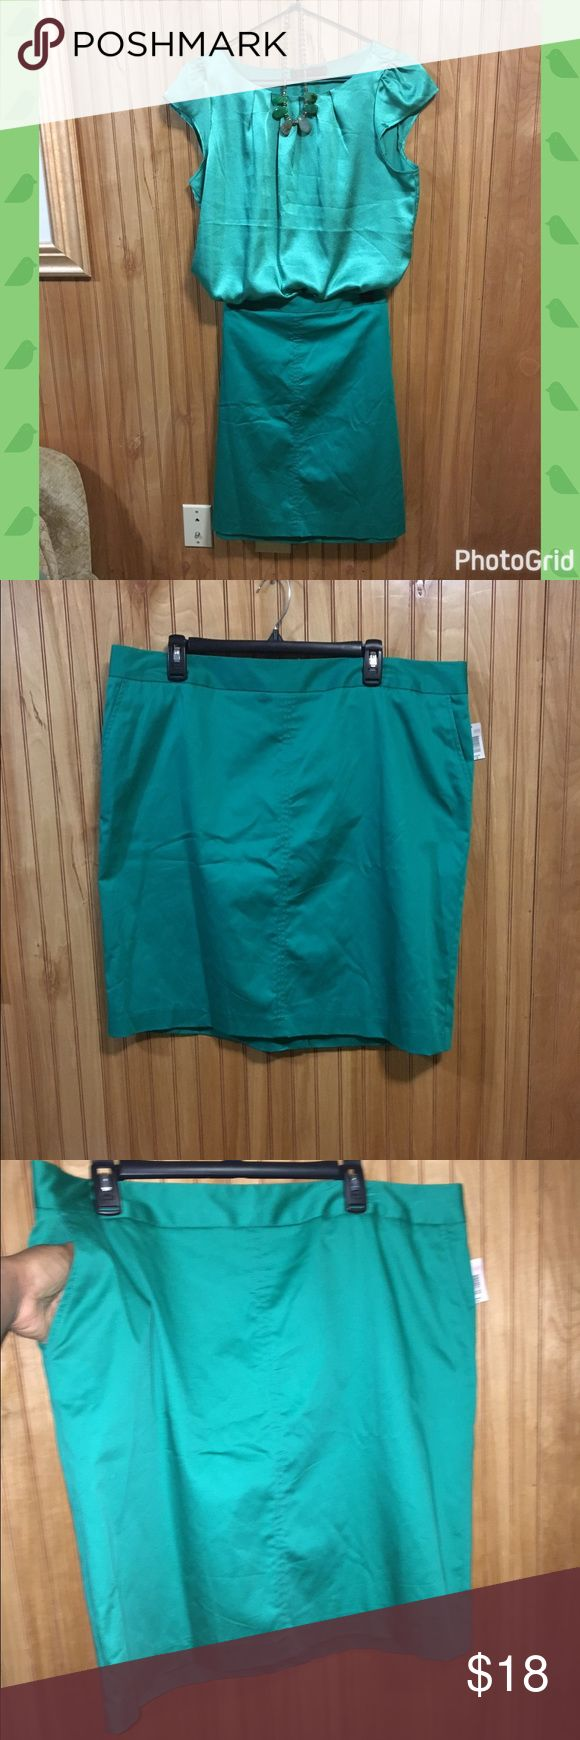 """🆕☘️Green Pencil Skirt Sz 18 Super cute Pencil skirt in green! It's a bit too short for me so I have to let it go. Knee length skirt with side hidden pockets! NWT. Measurements: Length=22.25"""", Waist=40"""", Hip=46"""". NWT. Sz 18 Attention Skirts Pencil"""